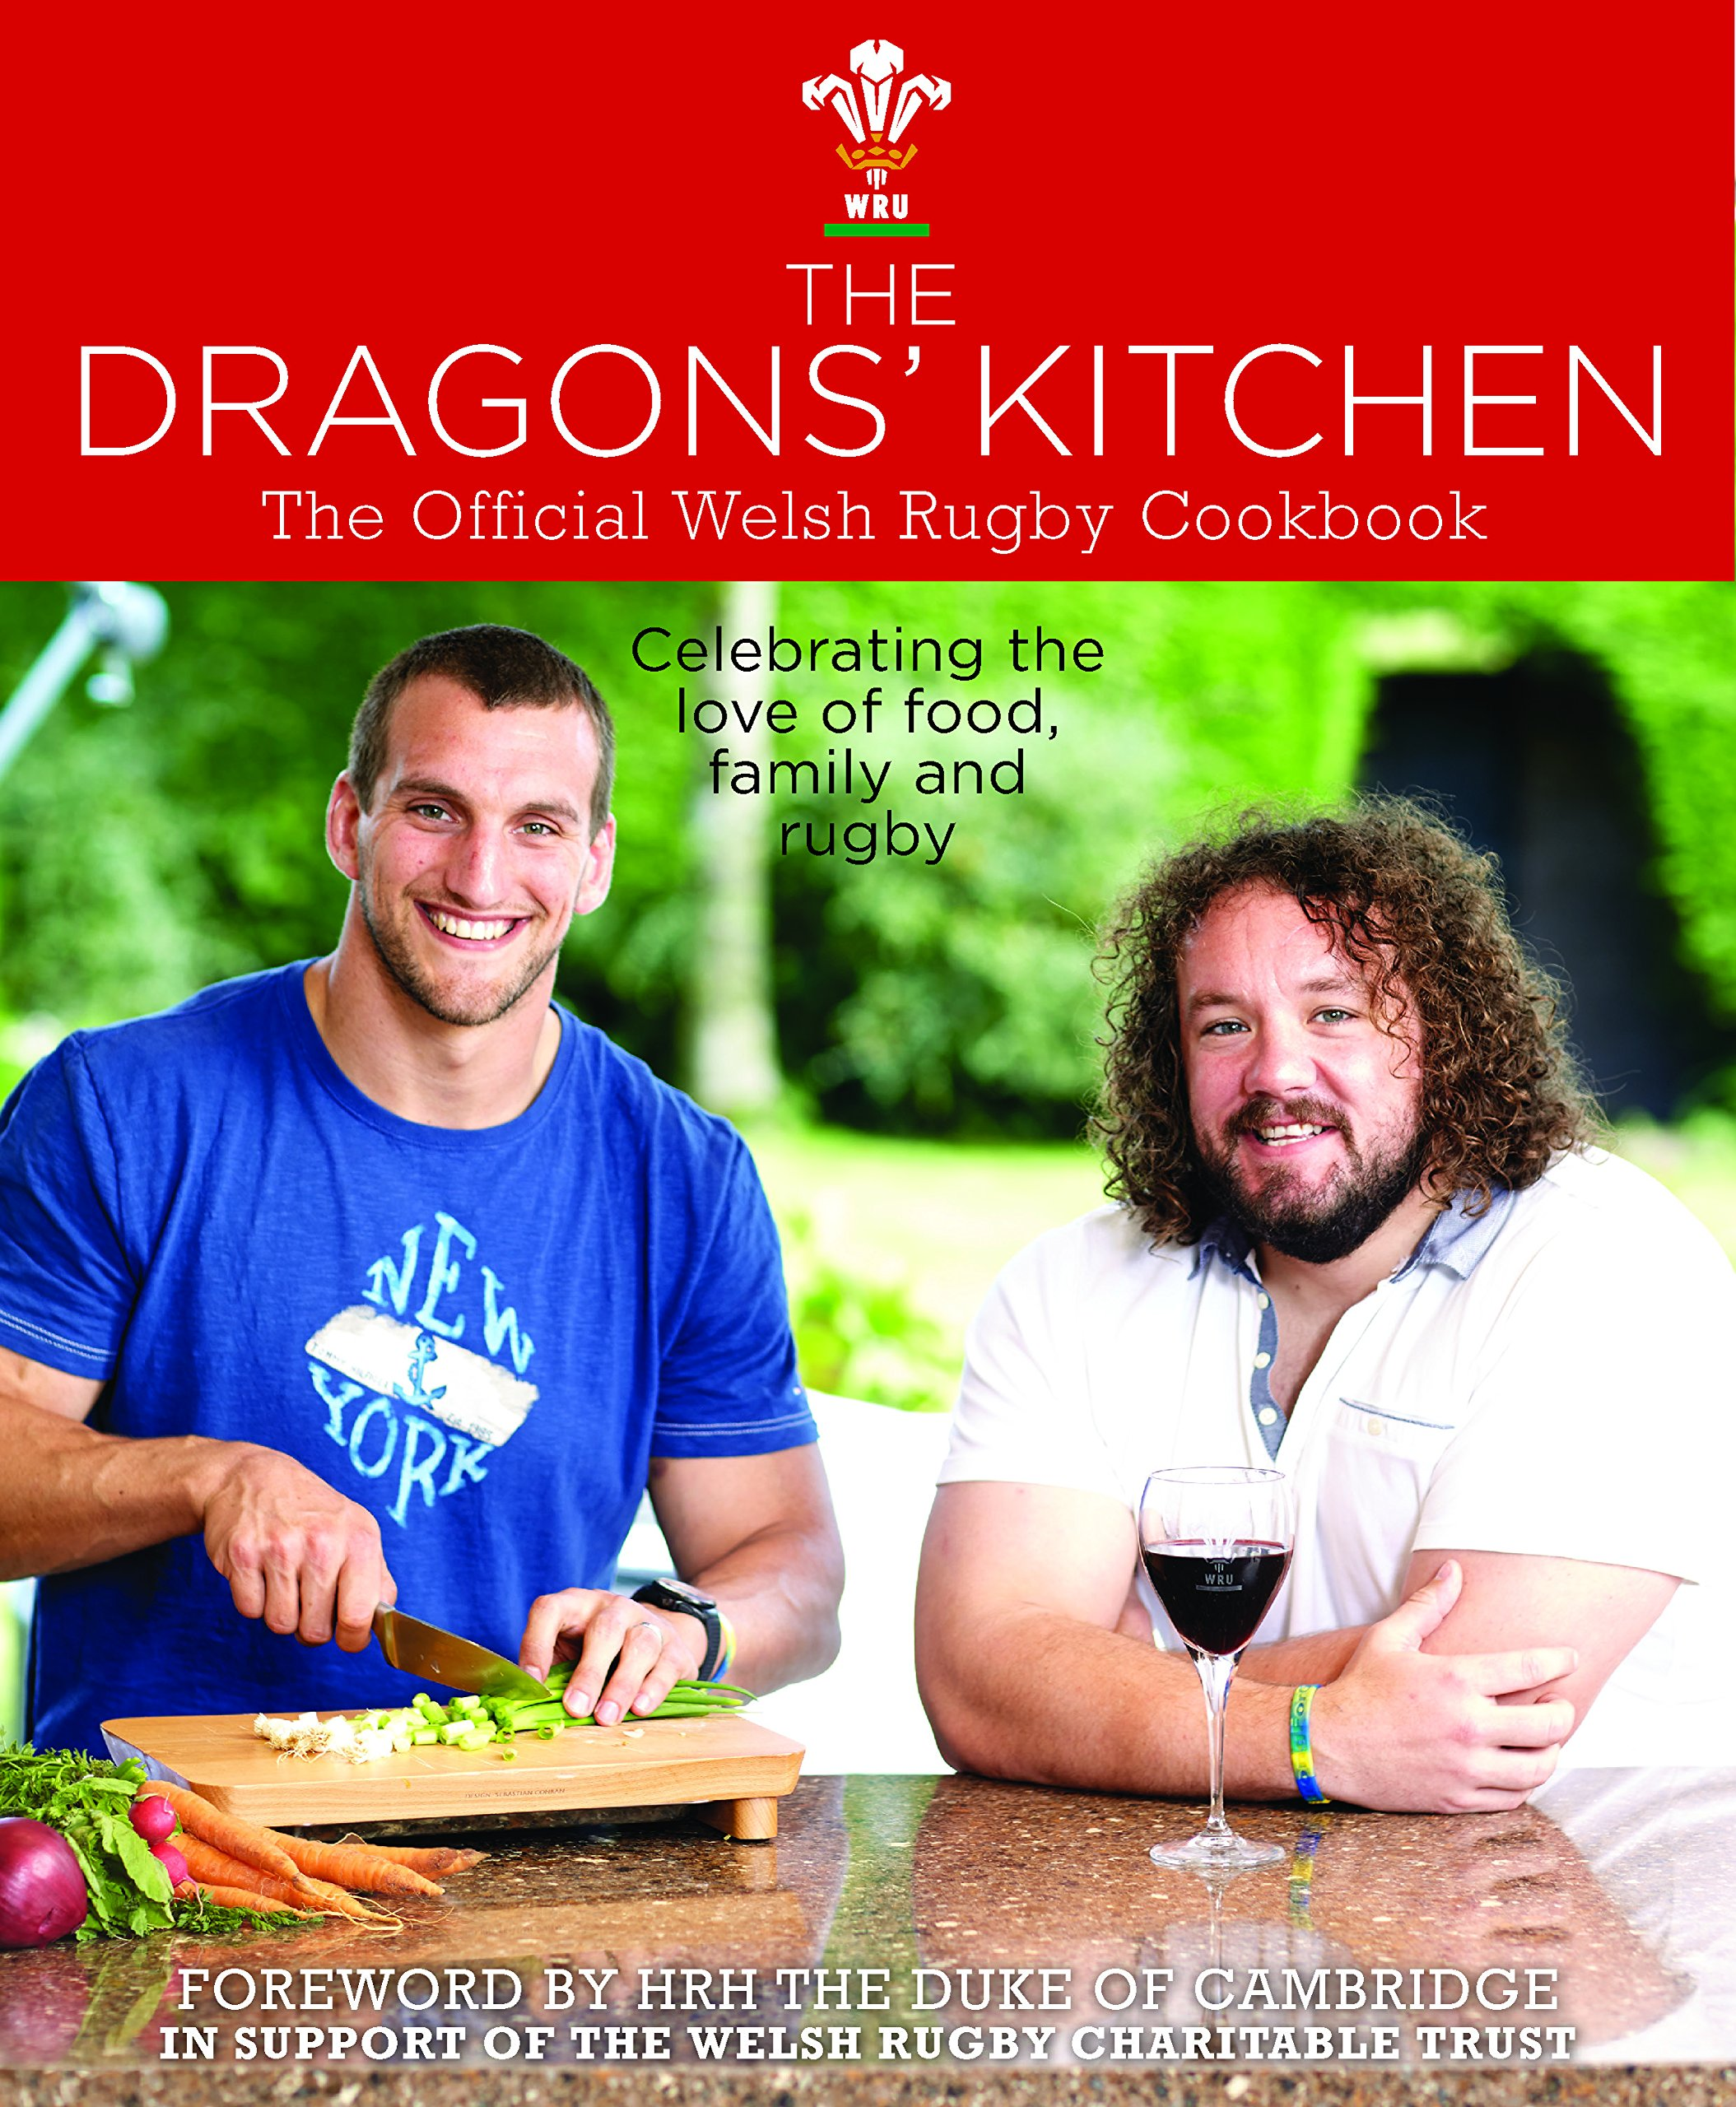 The Dragons' Kitchen: The Official Welsh Rugby Cookbook